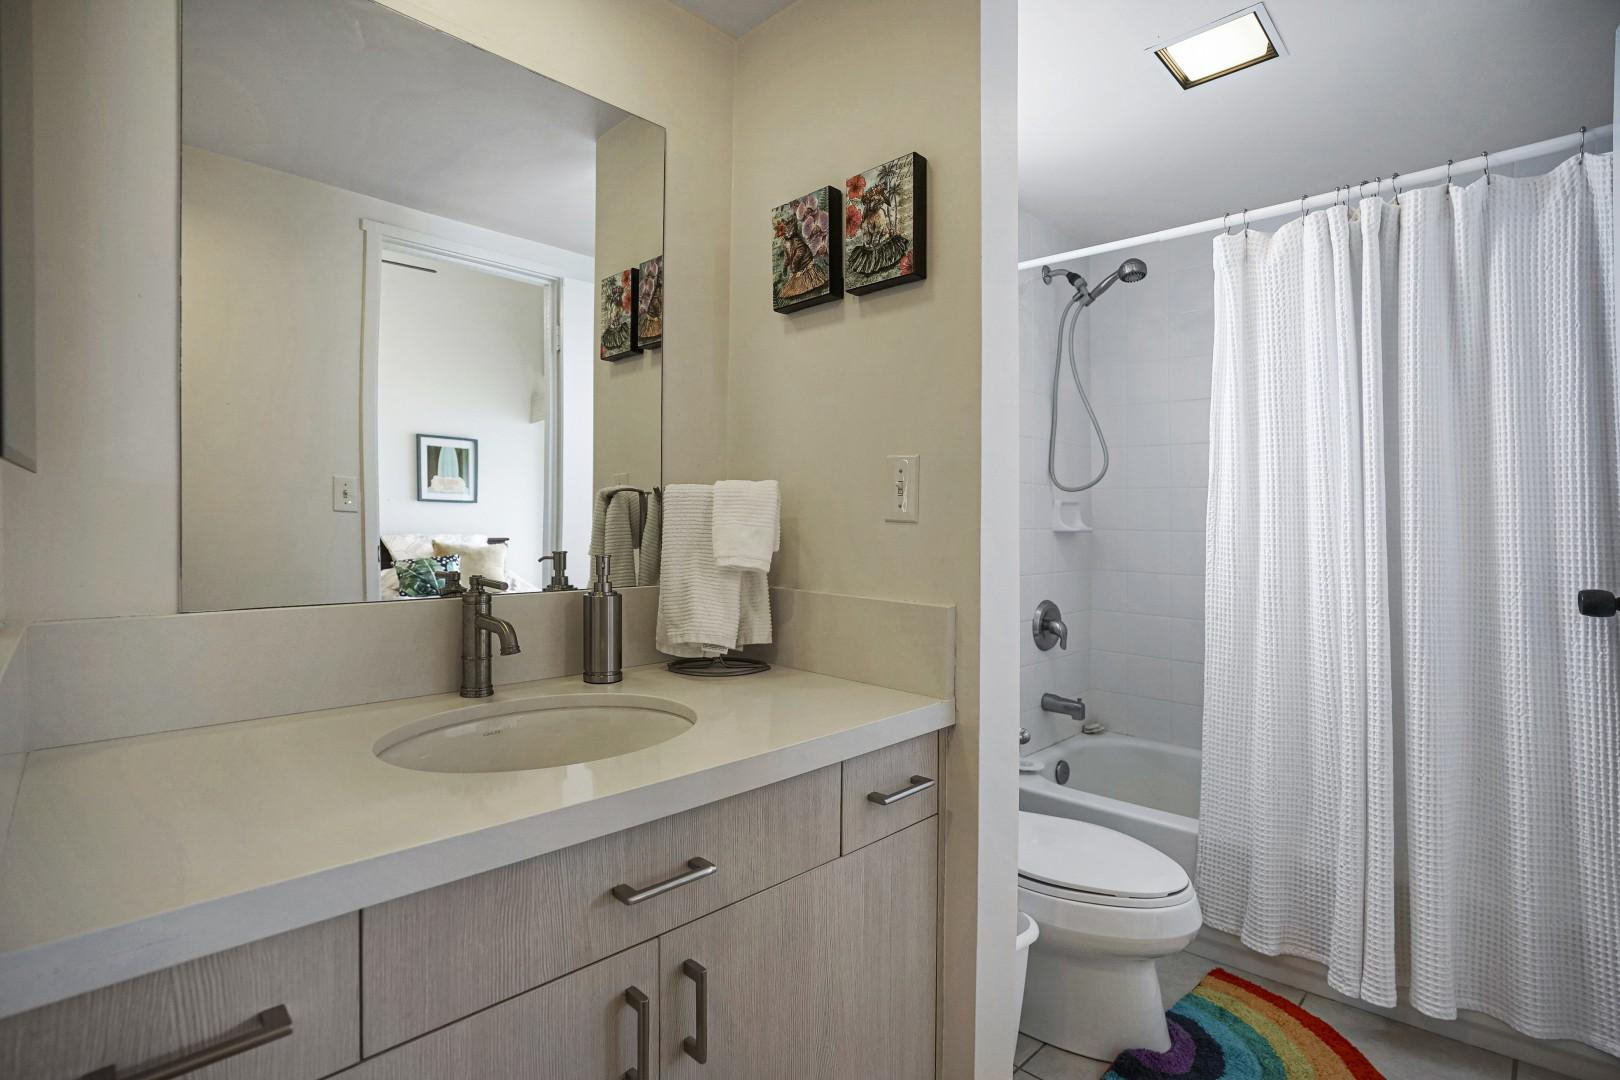 Both bathrooms have plenty of counter space